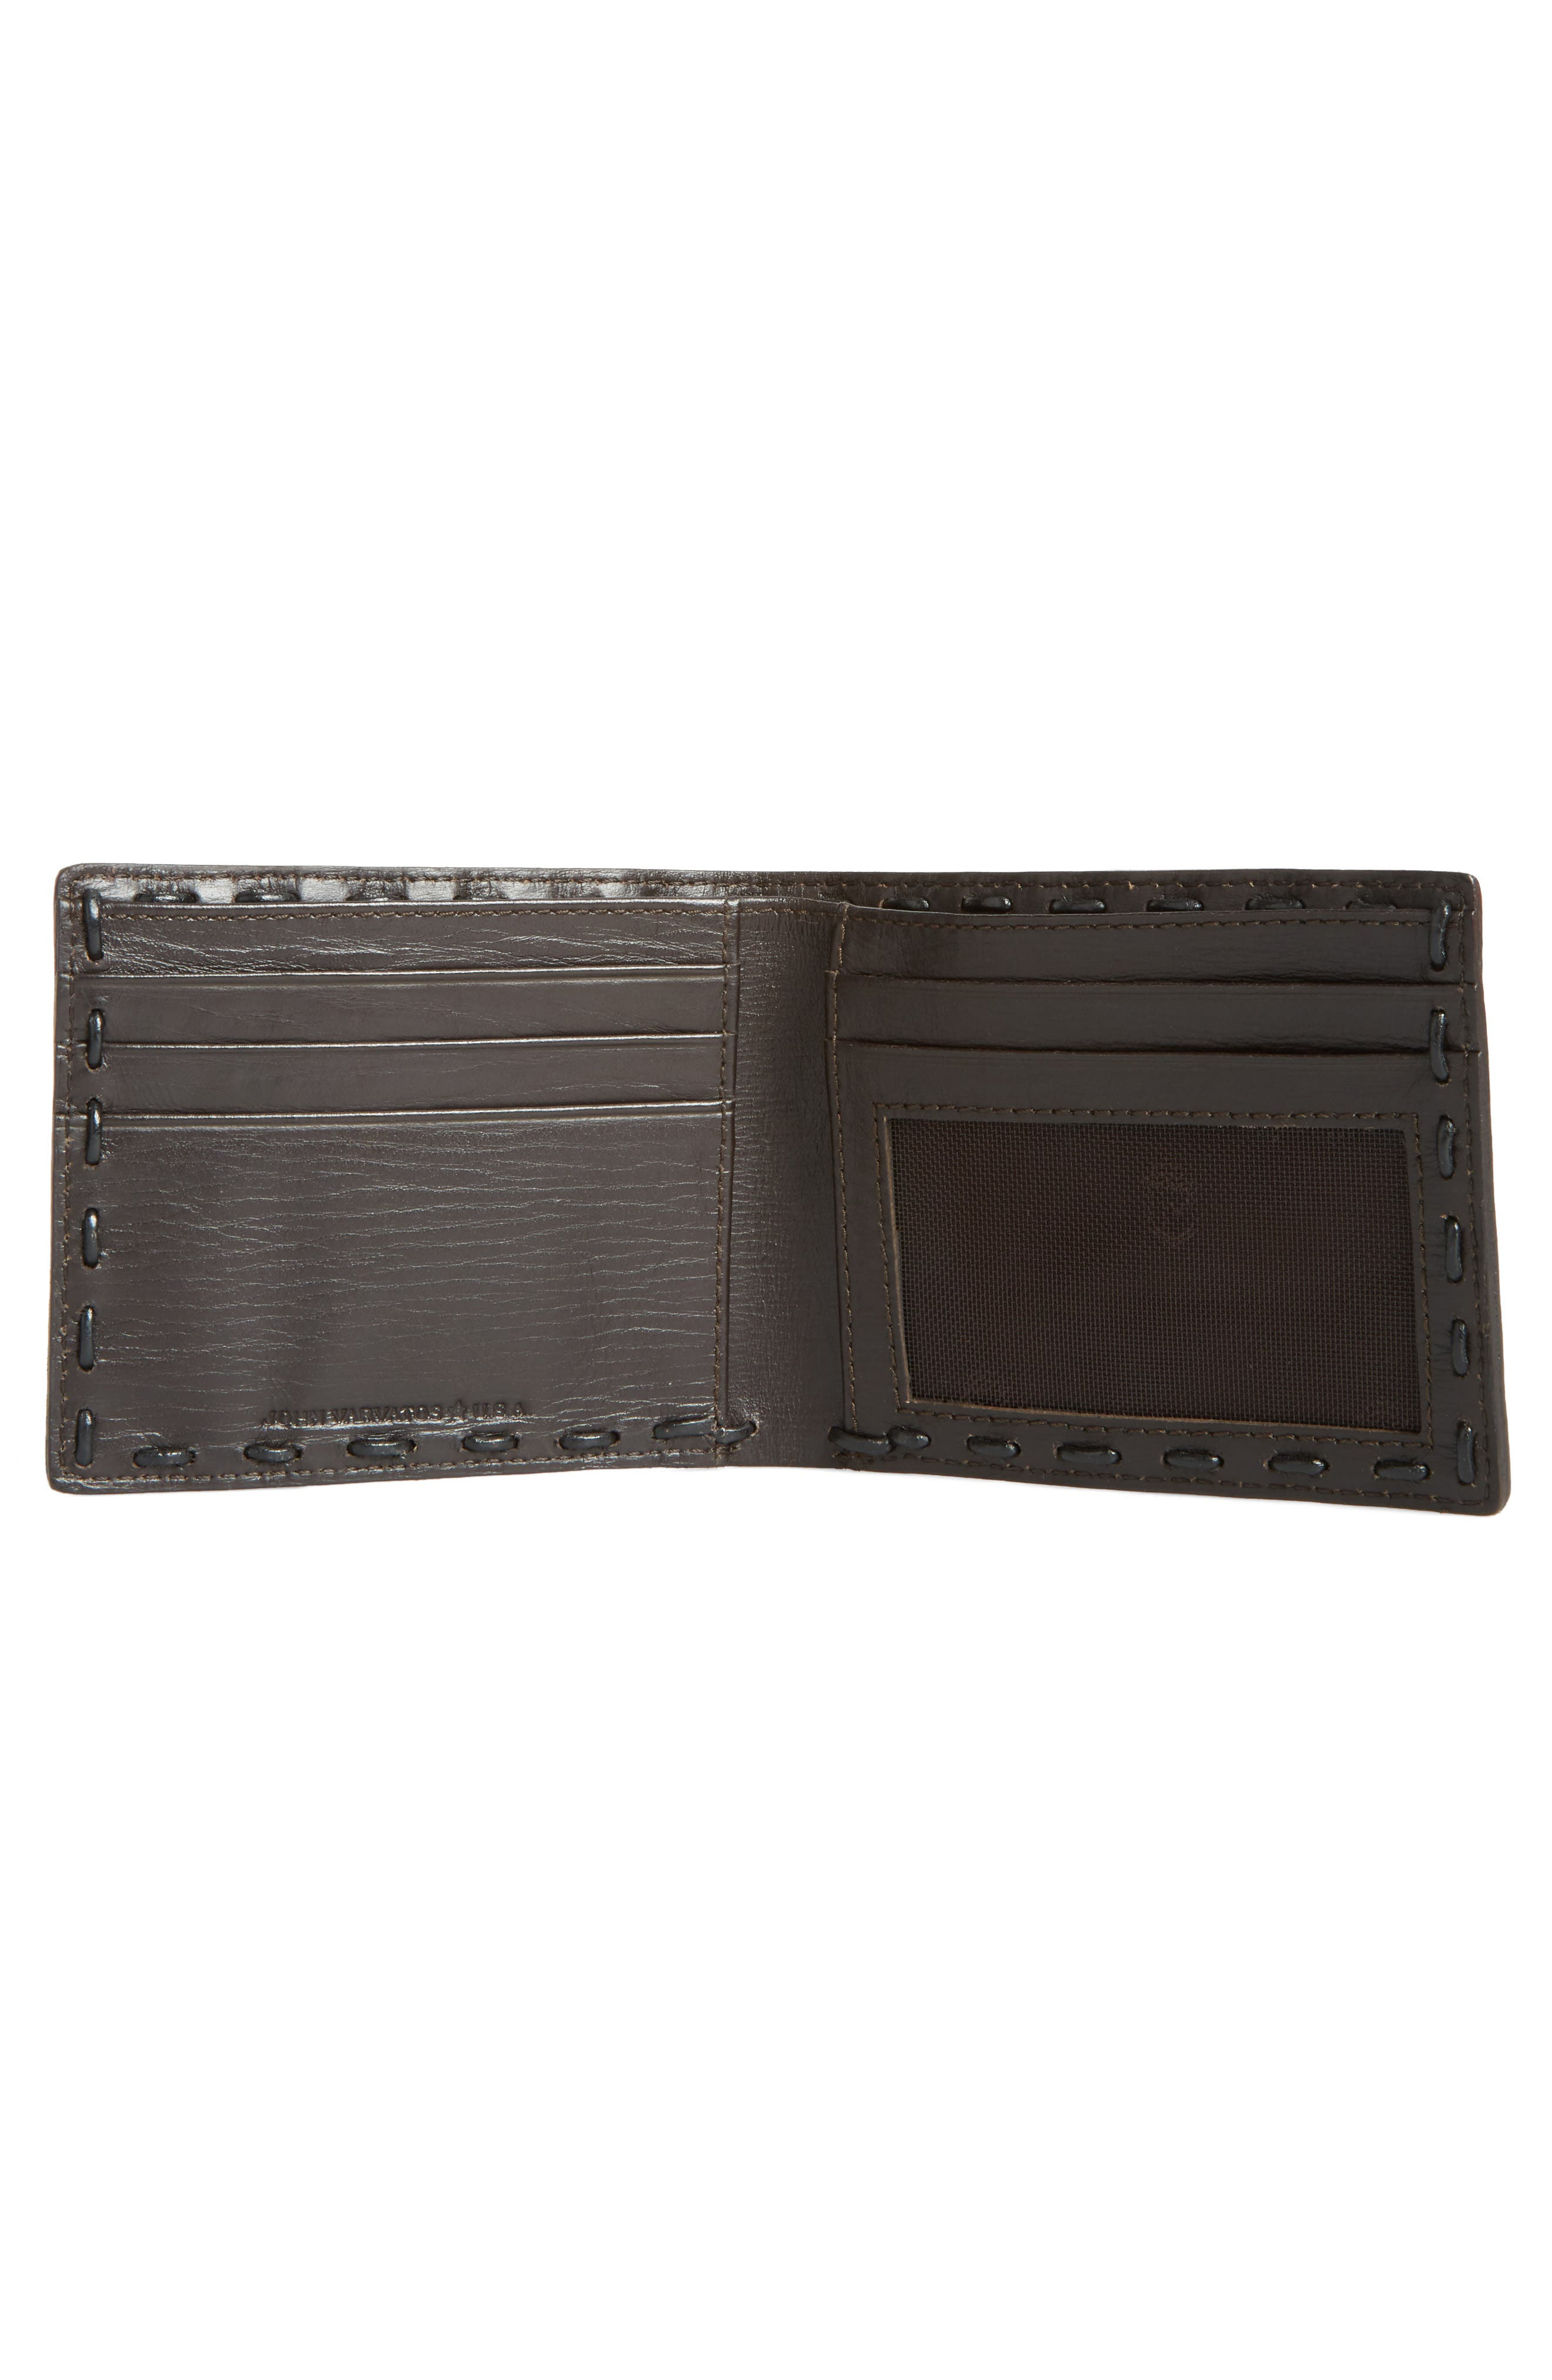 Pickstitch Leather Bifold Wallet,                             Alternate thumbnail 2, color,                             Chocolate